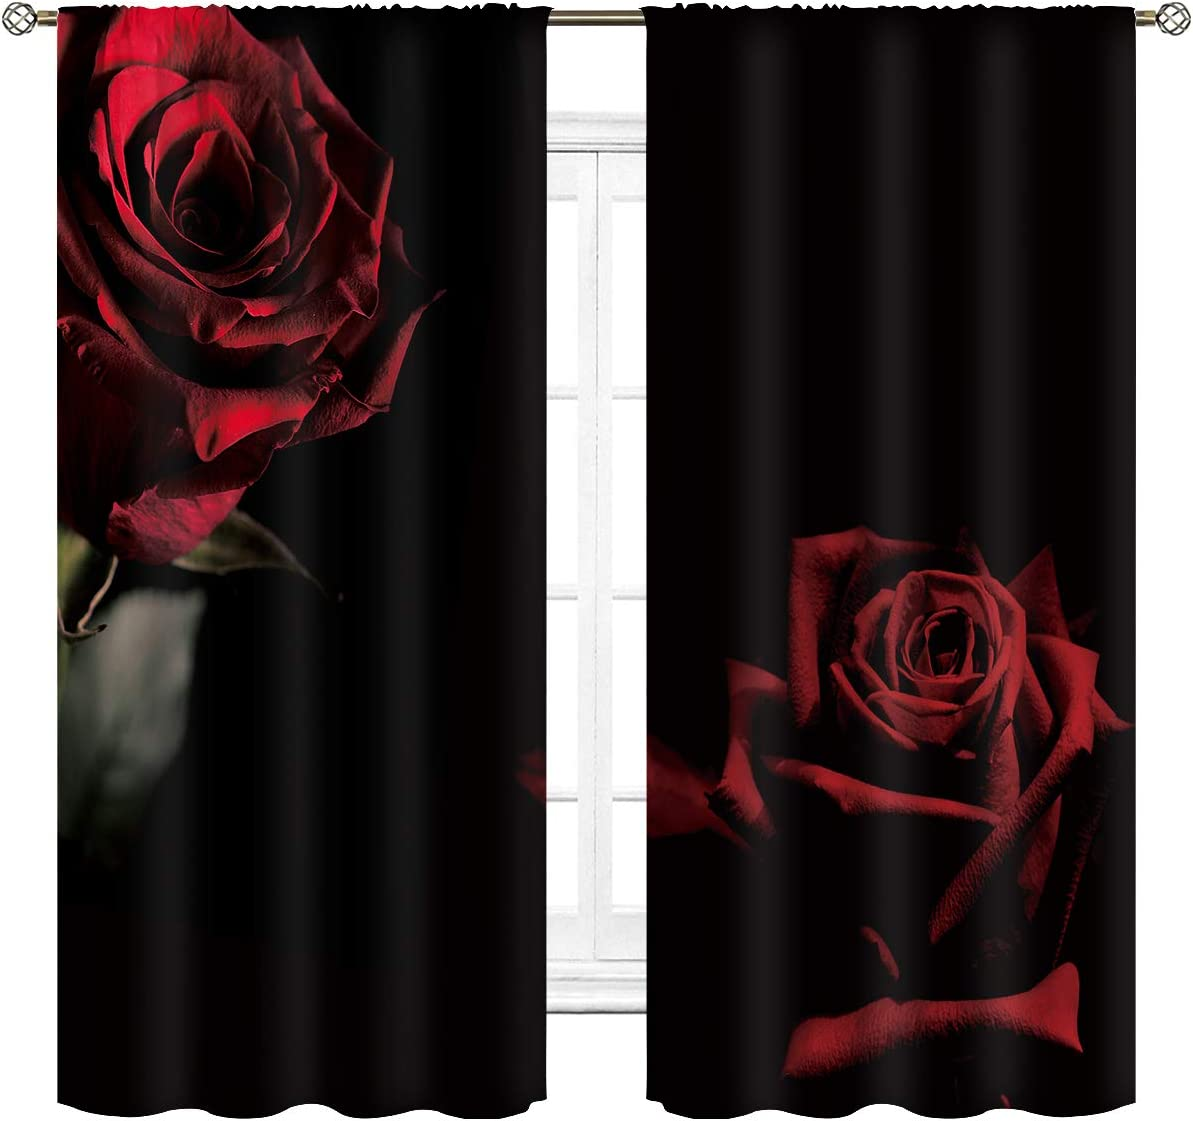 Cinbloo Red Rose Curtains Black and Red Floral Women Rod Pocket Flower Bedroom Decor FemaleBloom Lover Romantic Burgundy Living Room Window Drapes Treatment Fabric 2 Panels 42 (W) x 63(L) Inch